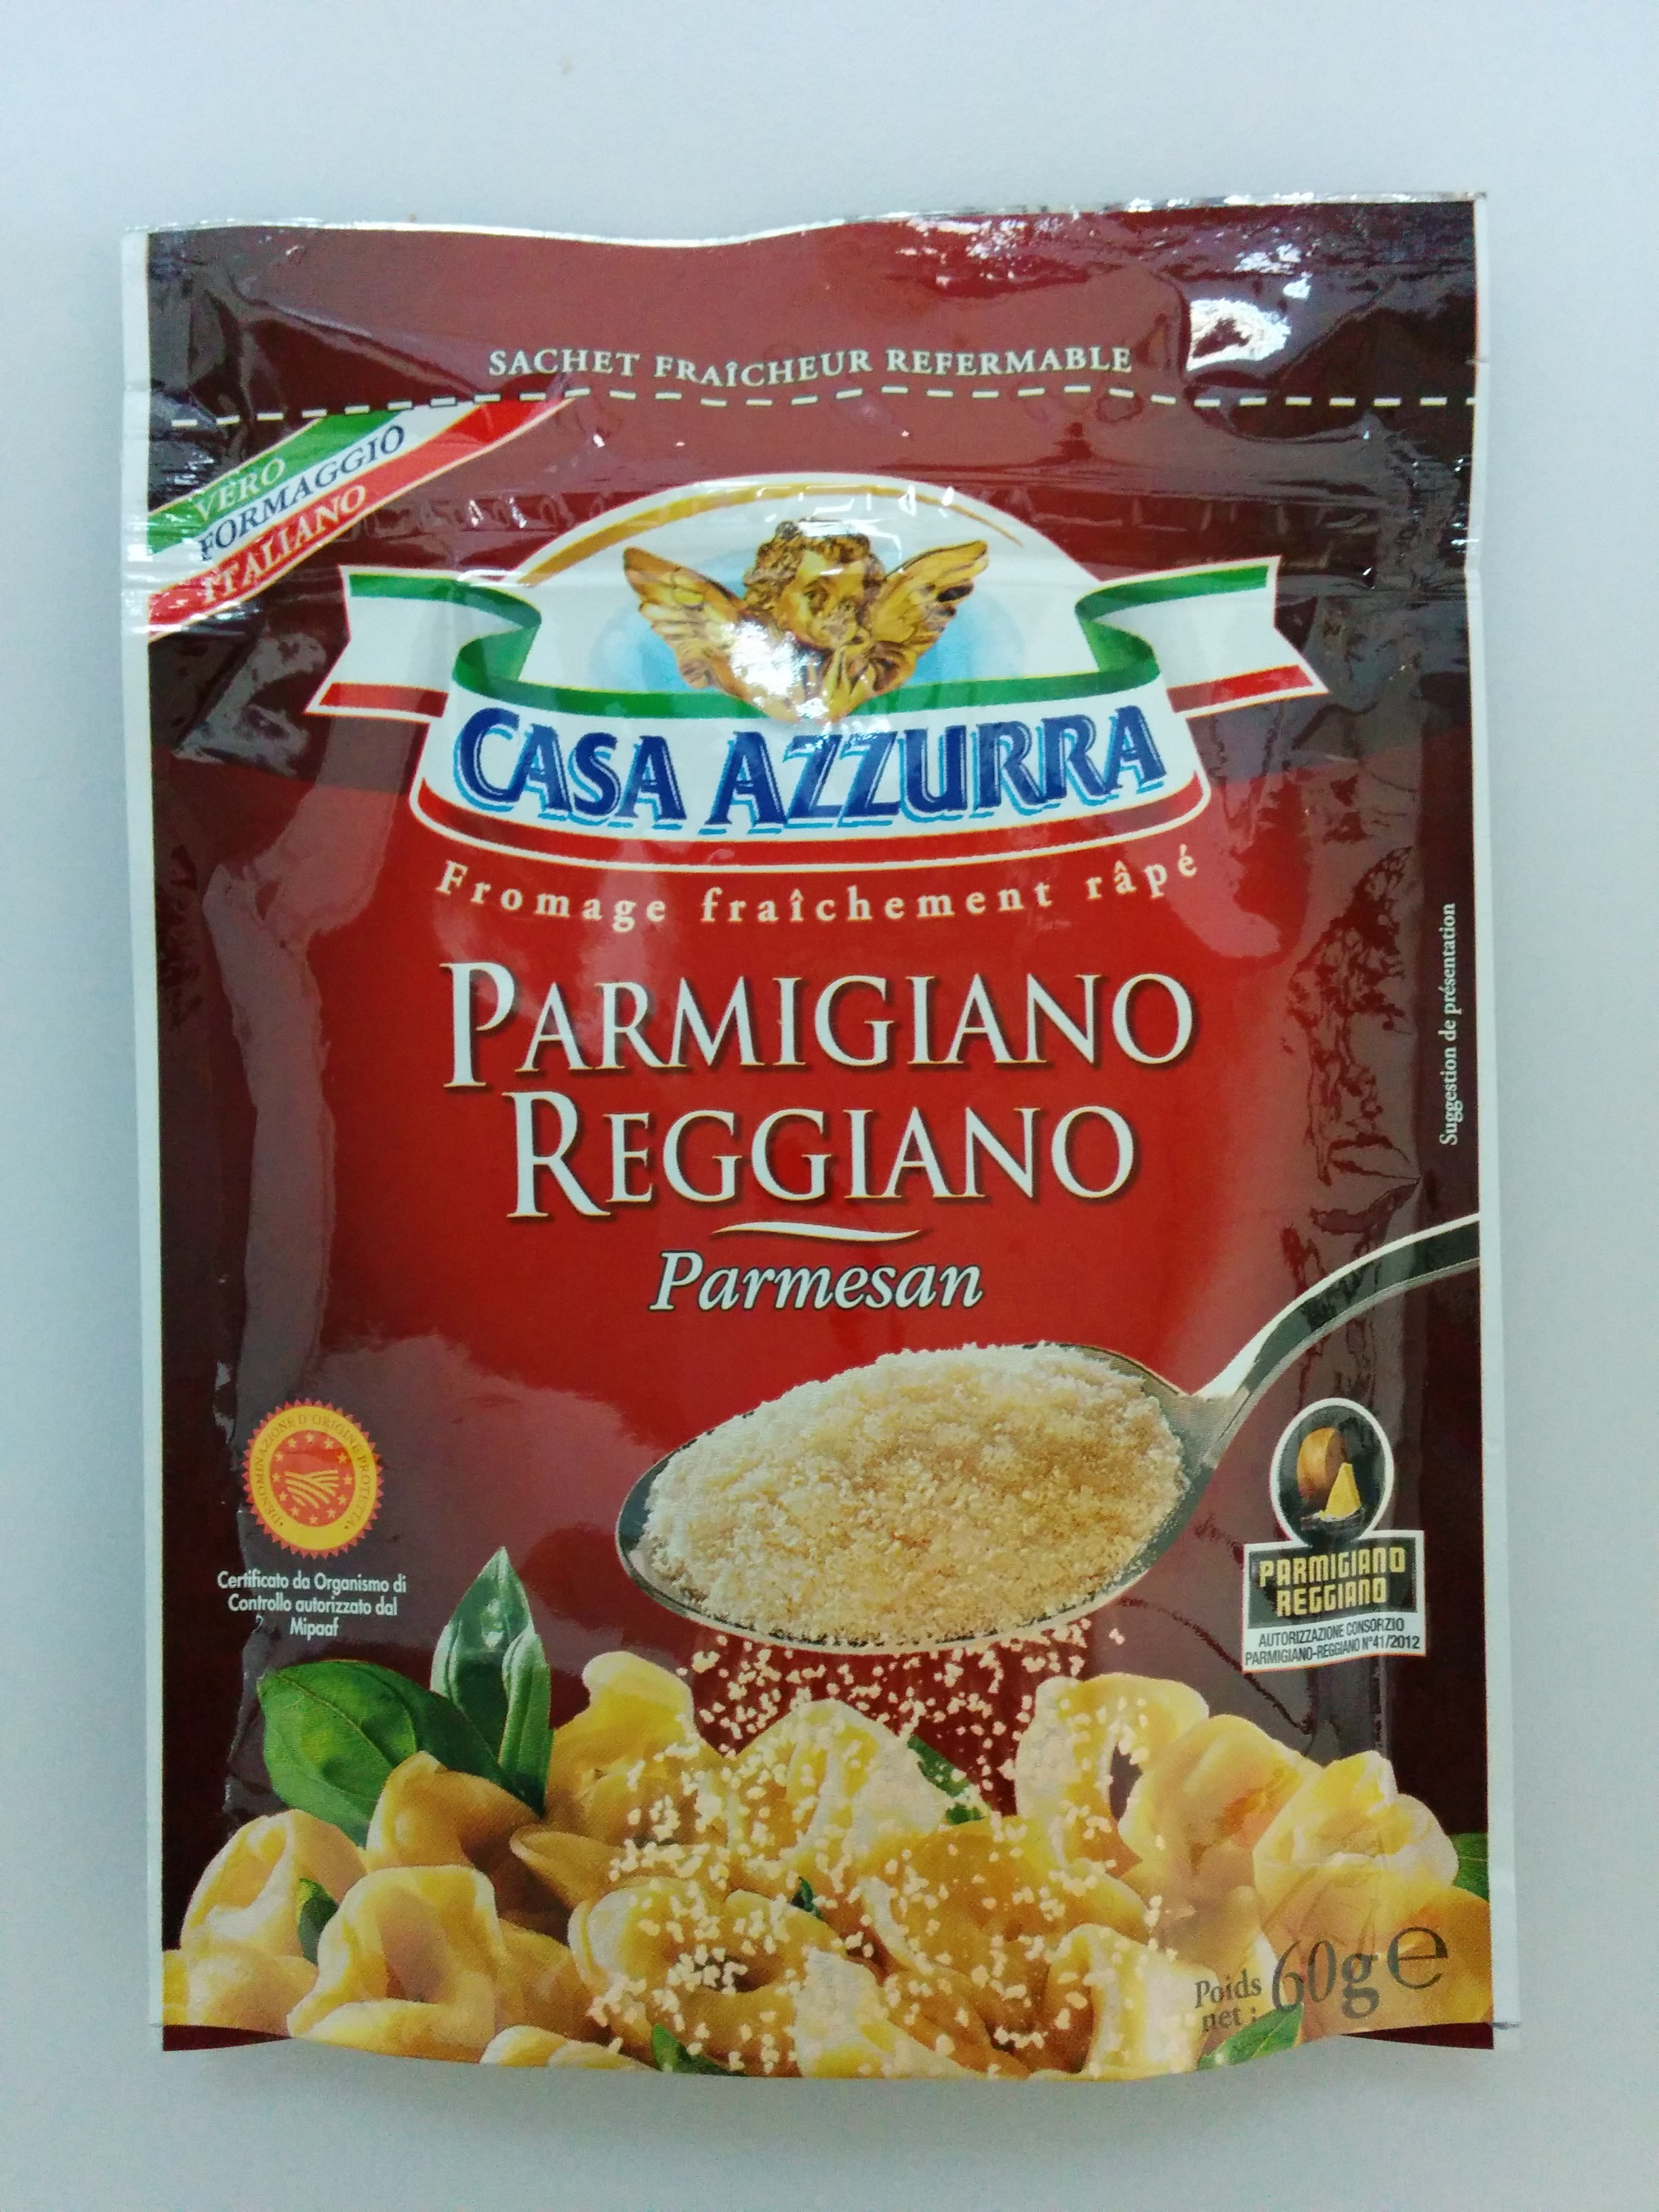 parmigiano reggiano parmesan aop r p 28 4 mg casa azzurra 60 g. Black Bedroom Furniture Sets. Home Design Ideas